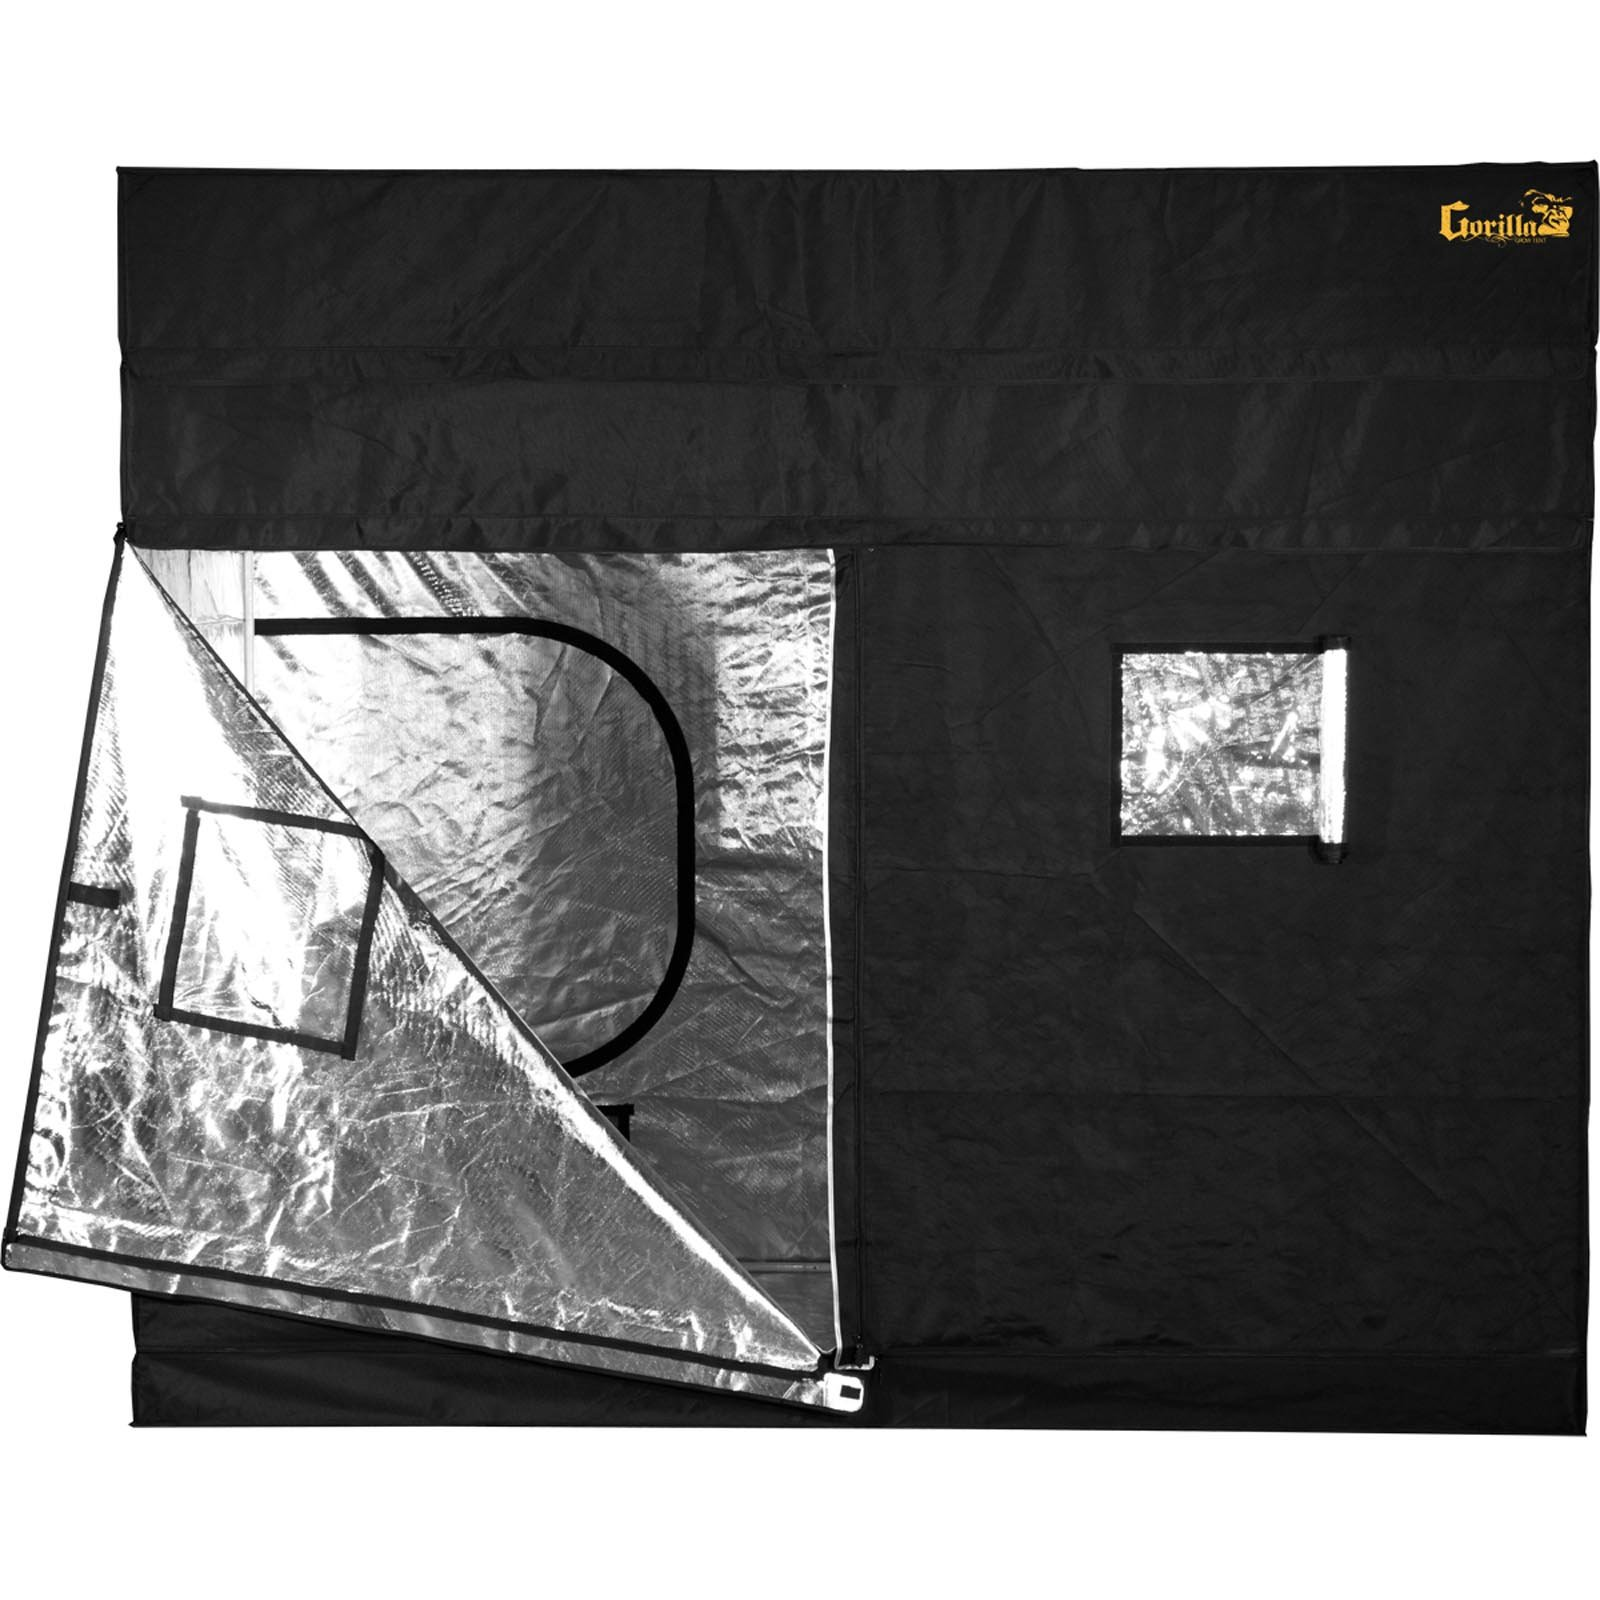 Gorilla Grow Tent GGT59 Tent, 5 by 9 by 6-Feet/11-Inch, Black